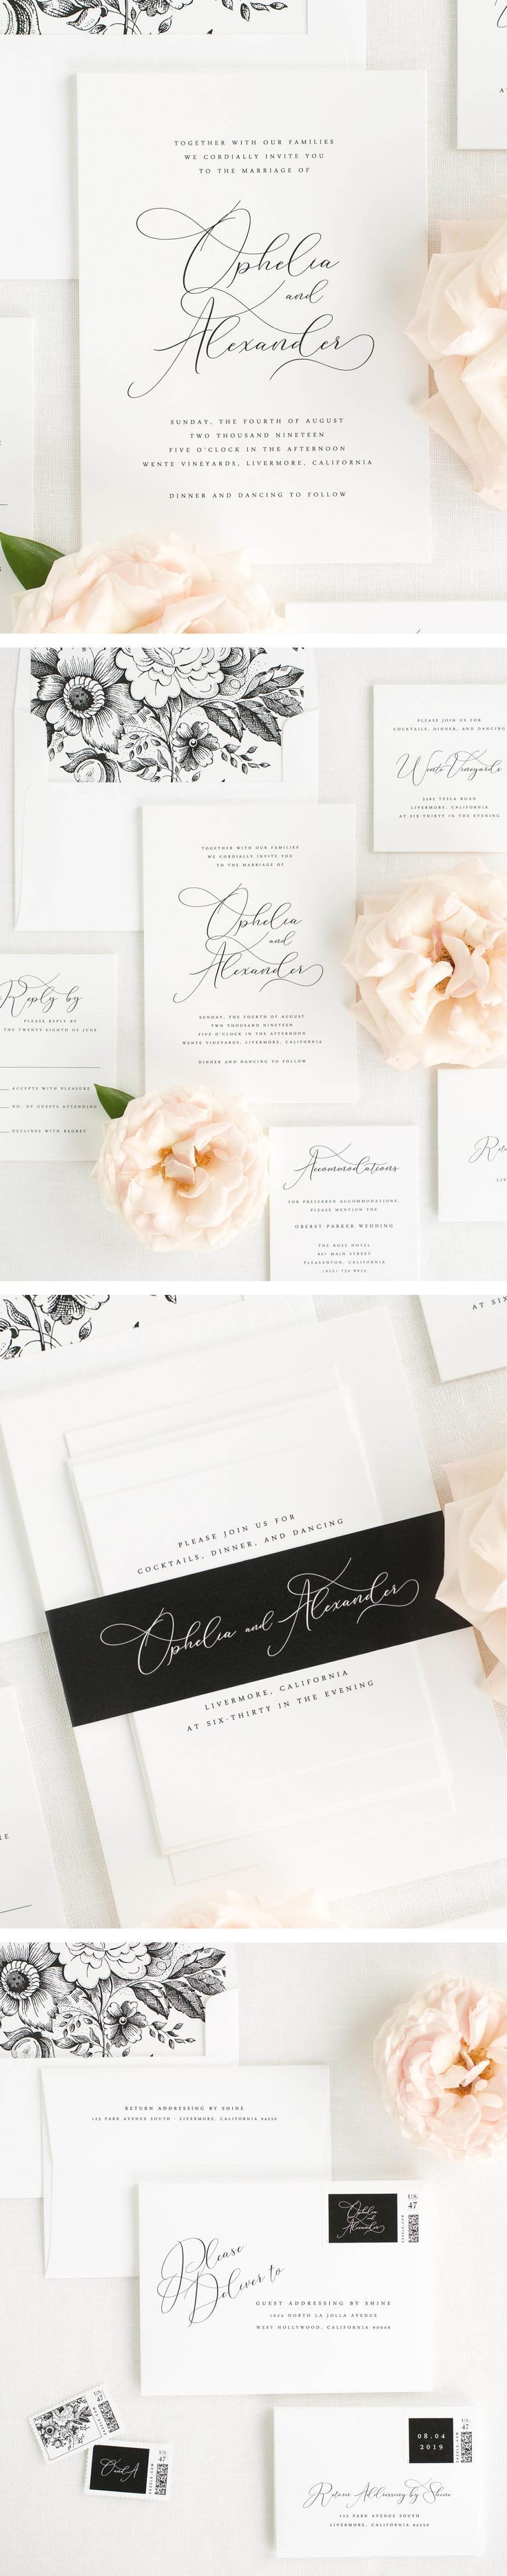 what to charge for wedding invitations%0A A delicate calligraphyinspired font adds a touch of drama to these elegant wedding  invitations